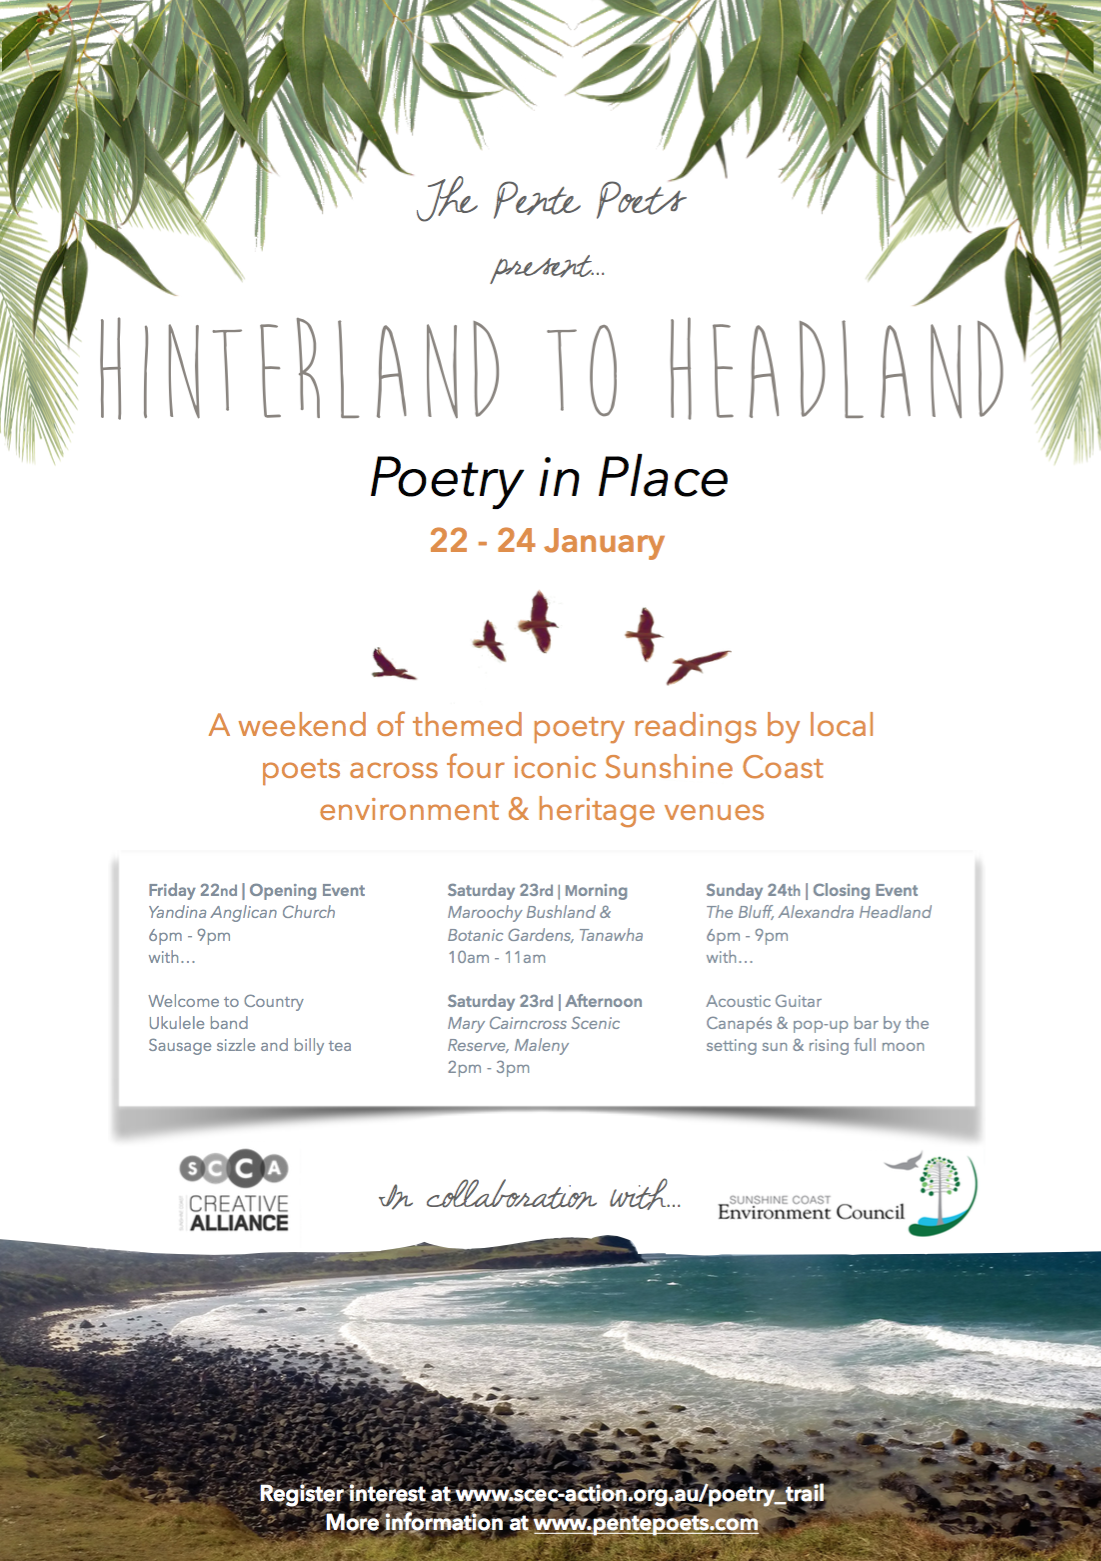 gallery-POSTER_-_Hinterland_to_Headland-Poetry_in_Place.png